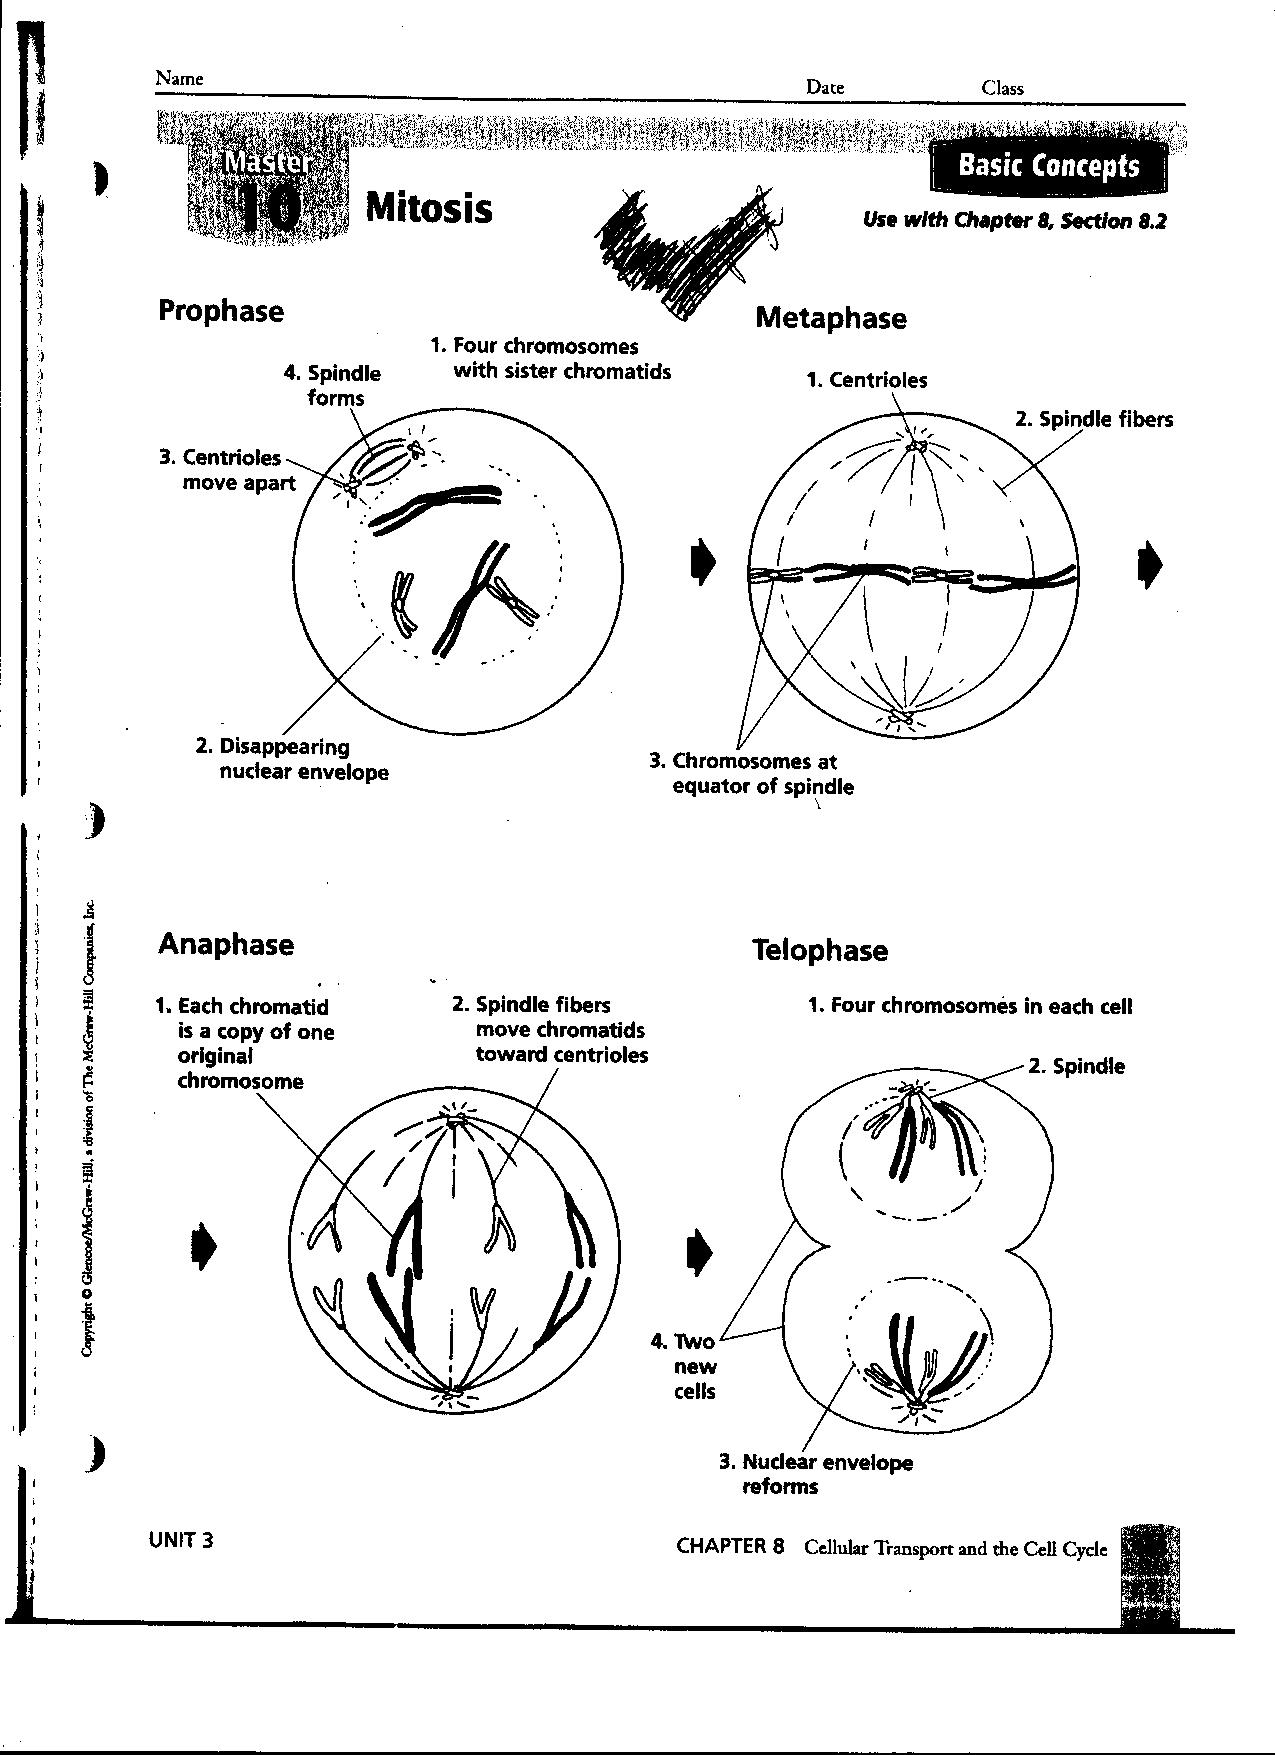 meiosis diagram worksheet vectra b mid wiring 14 best images of photosynthesis worksheets with answer key - cellular ...